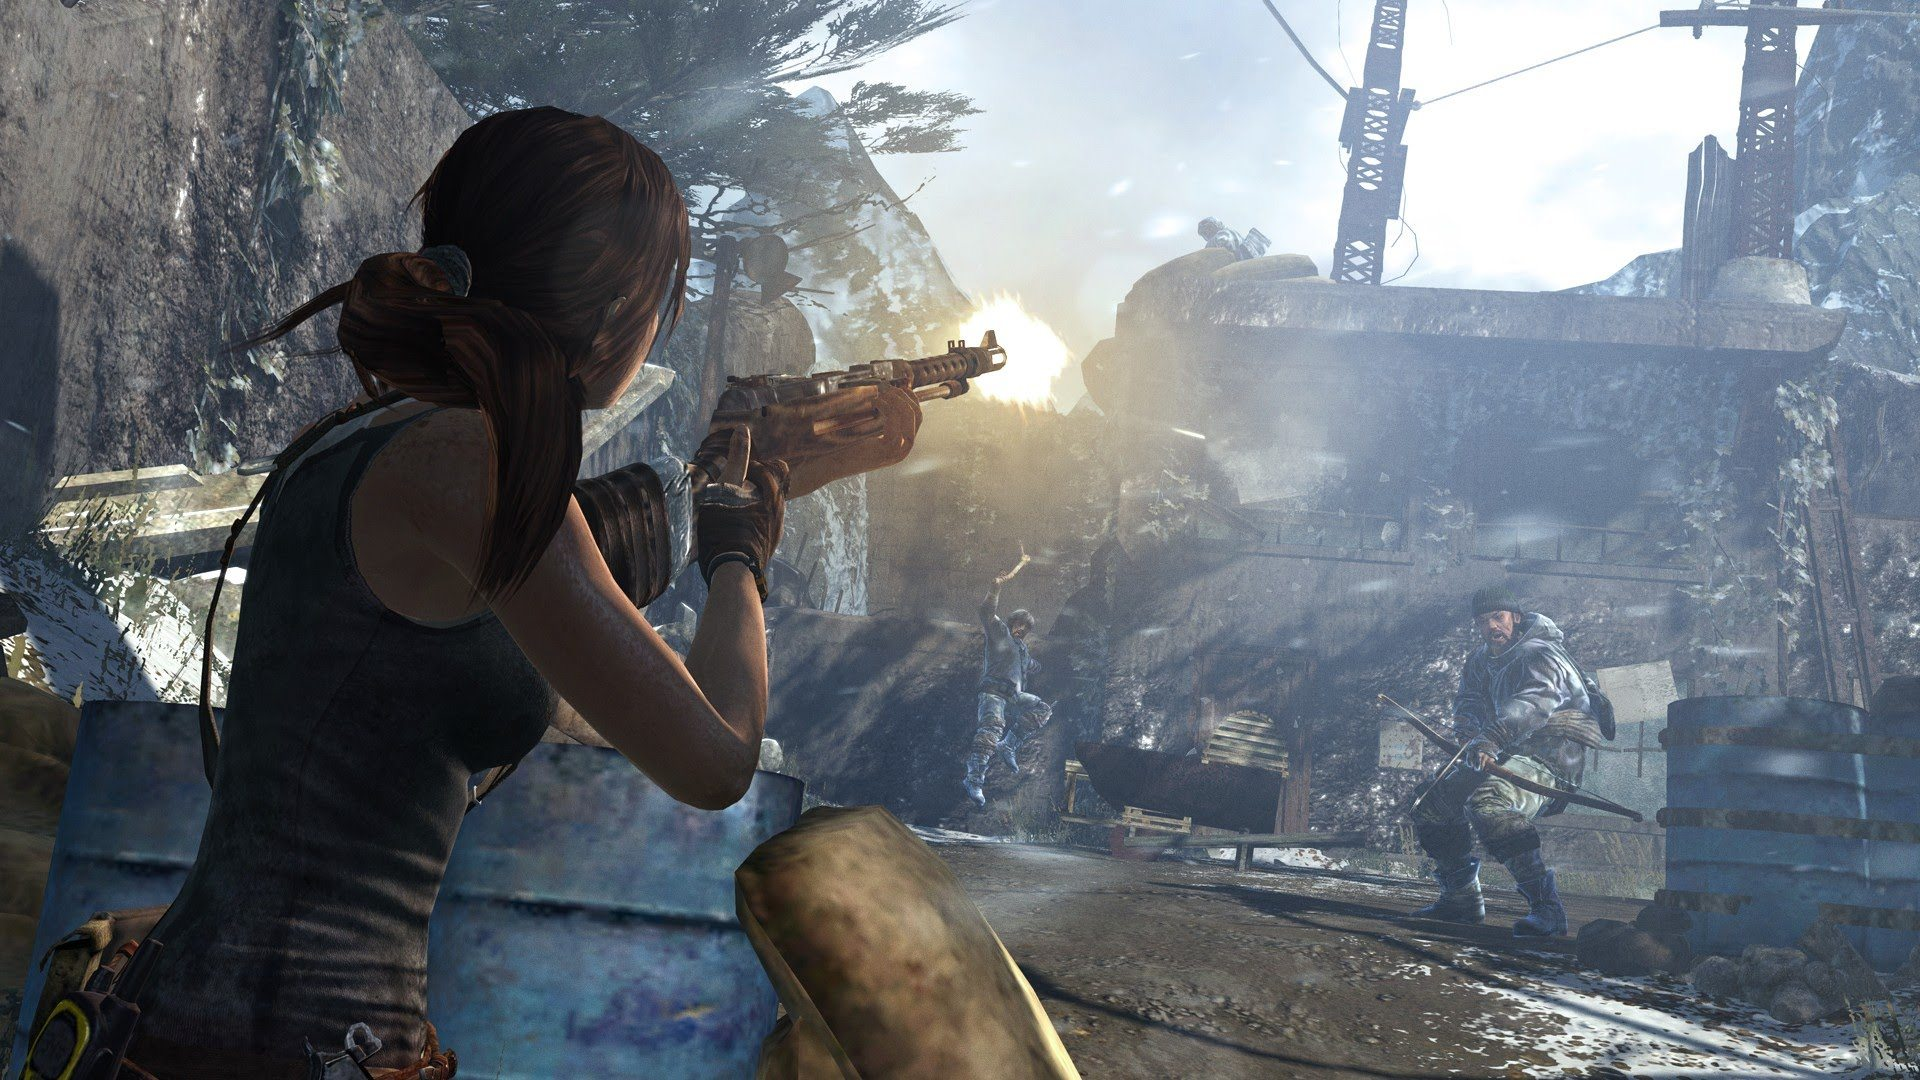 Rise of the Tomb Raider image #1